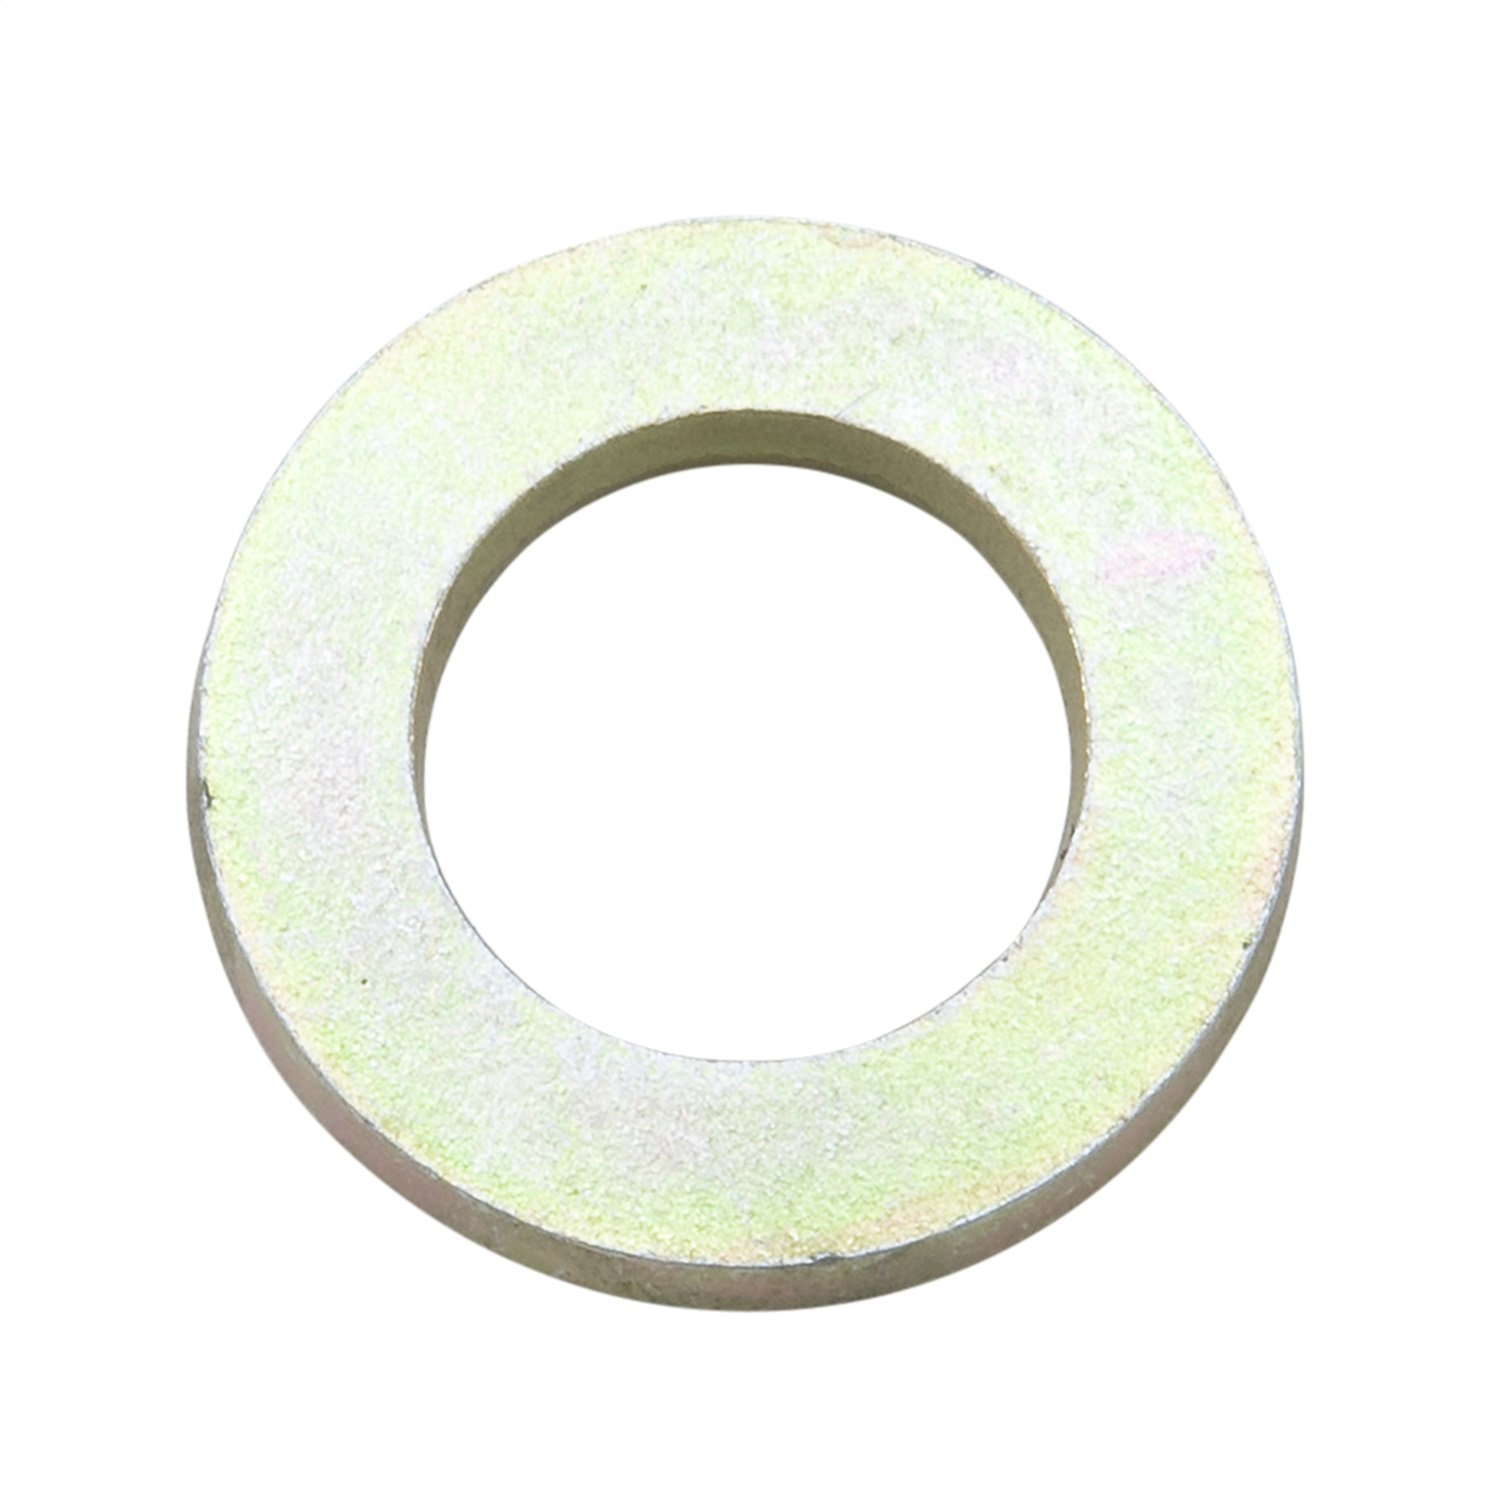 Yukon Gear & Axle (YSPPN-029) Replacement Pinion Nut Washer for Dana Differential